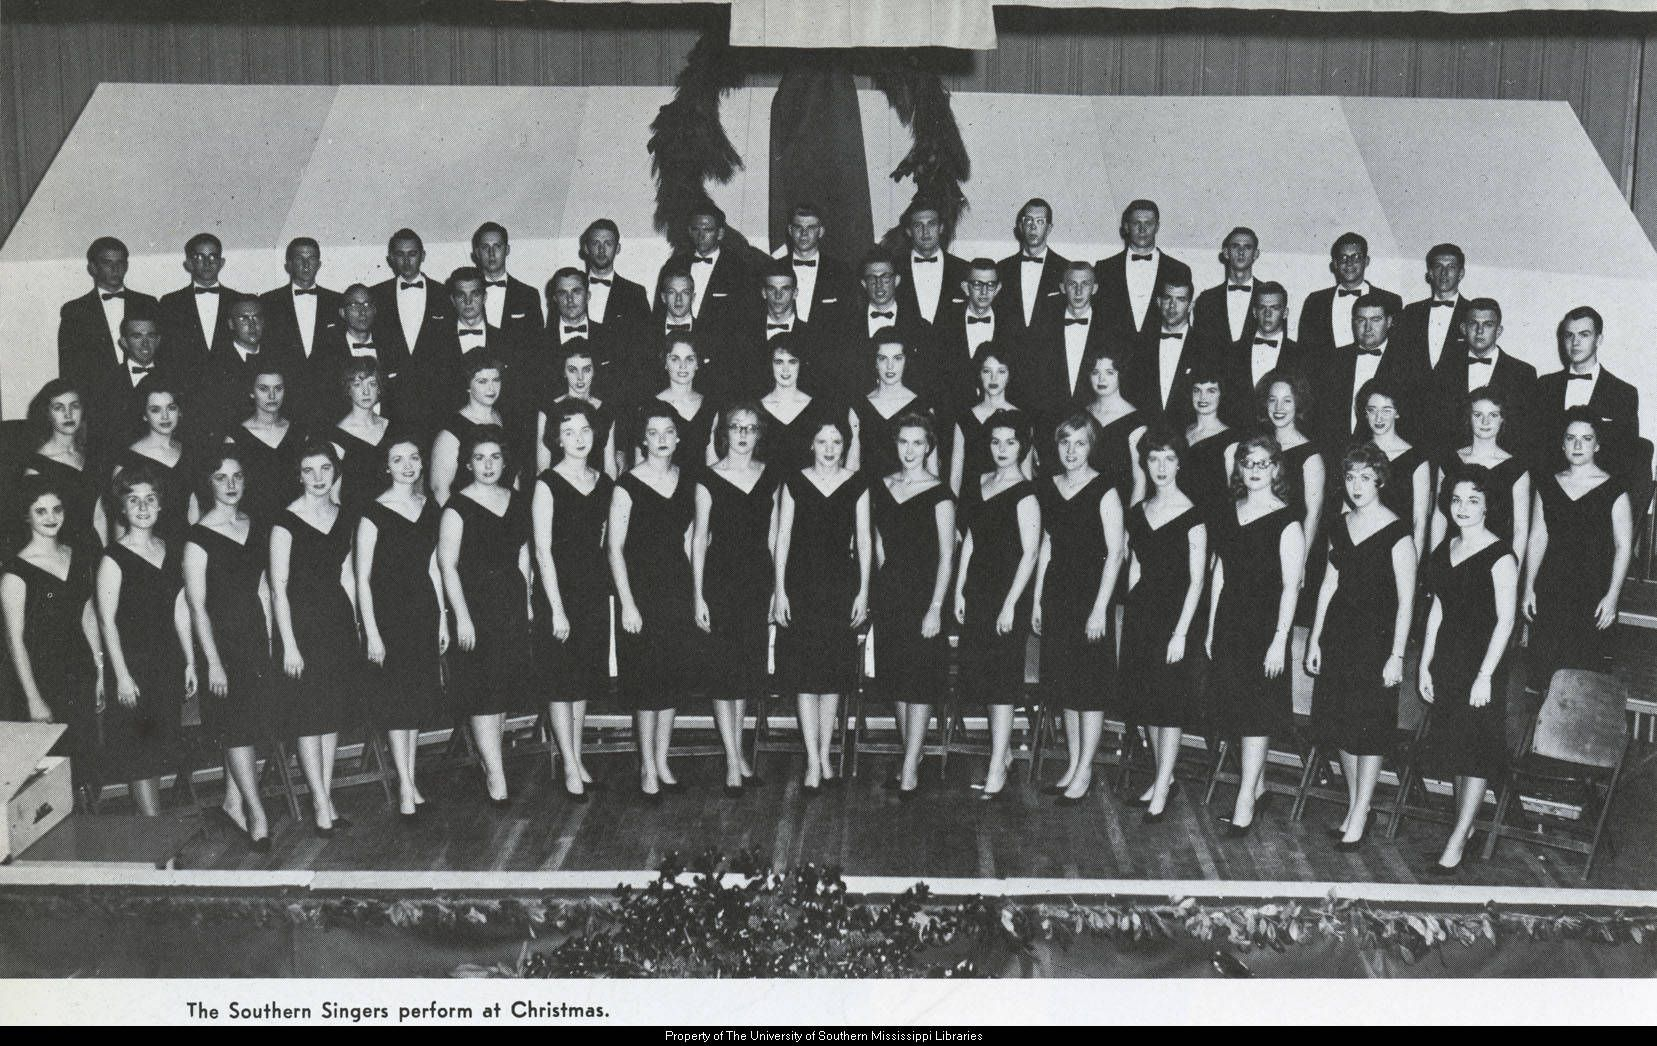 The Southern Singers perform at Christmas in 1962.